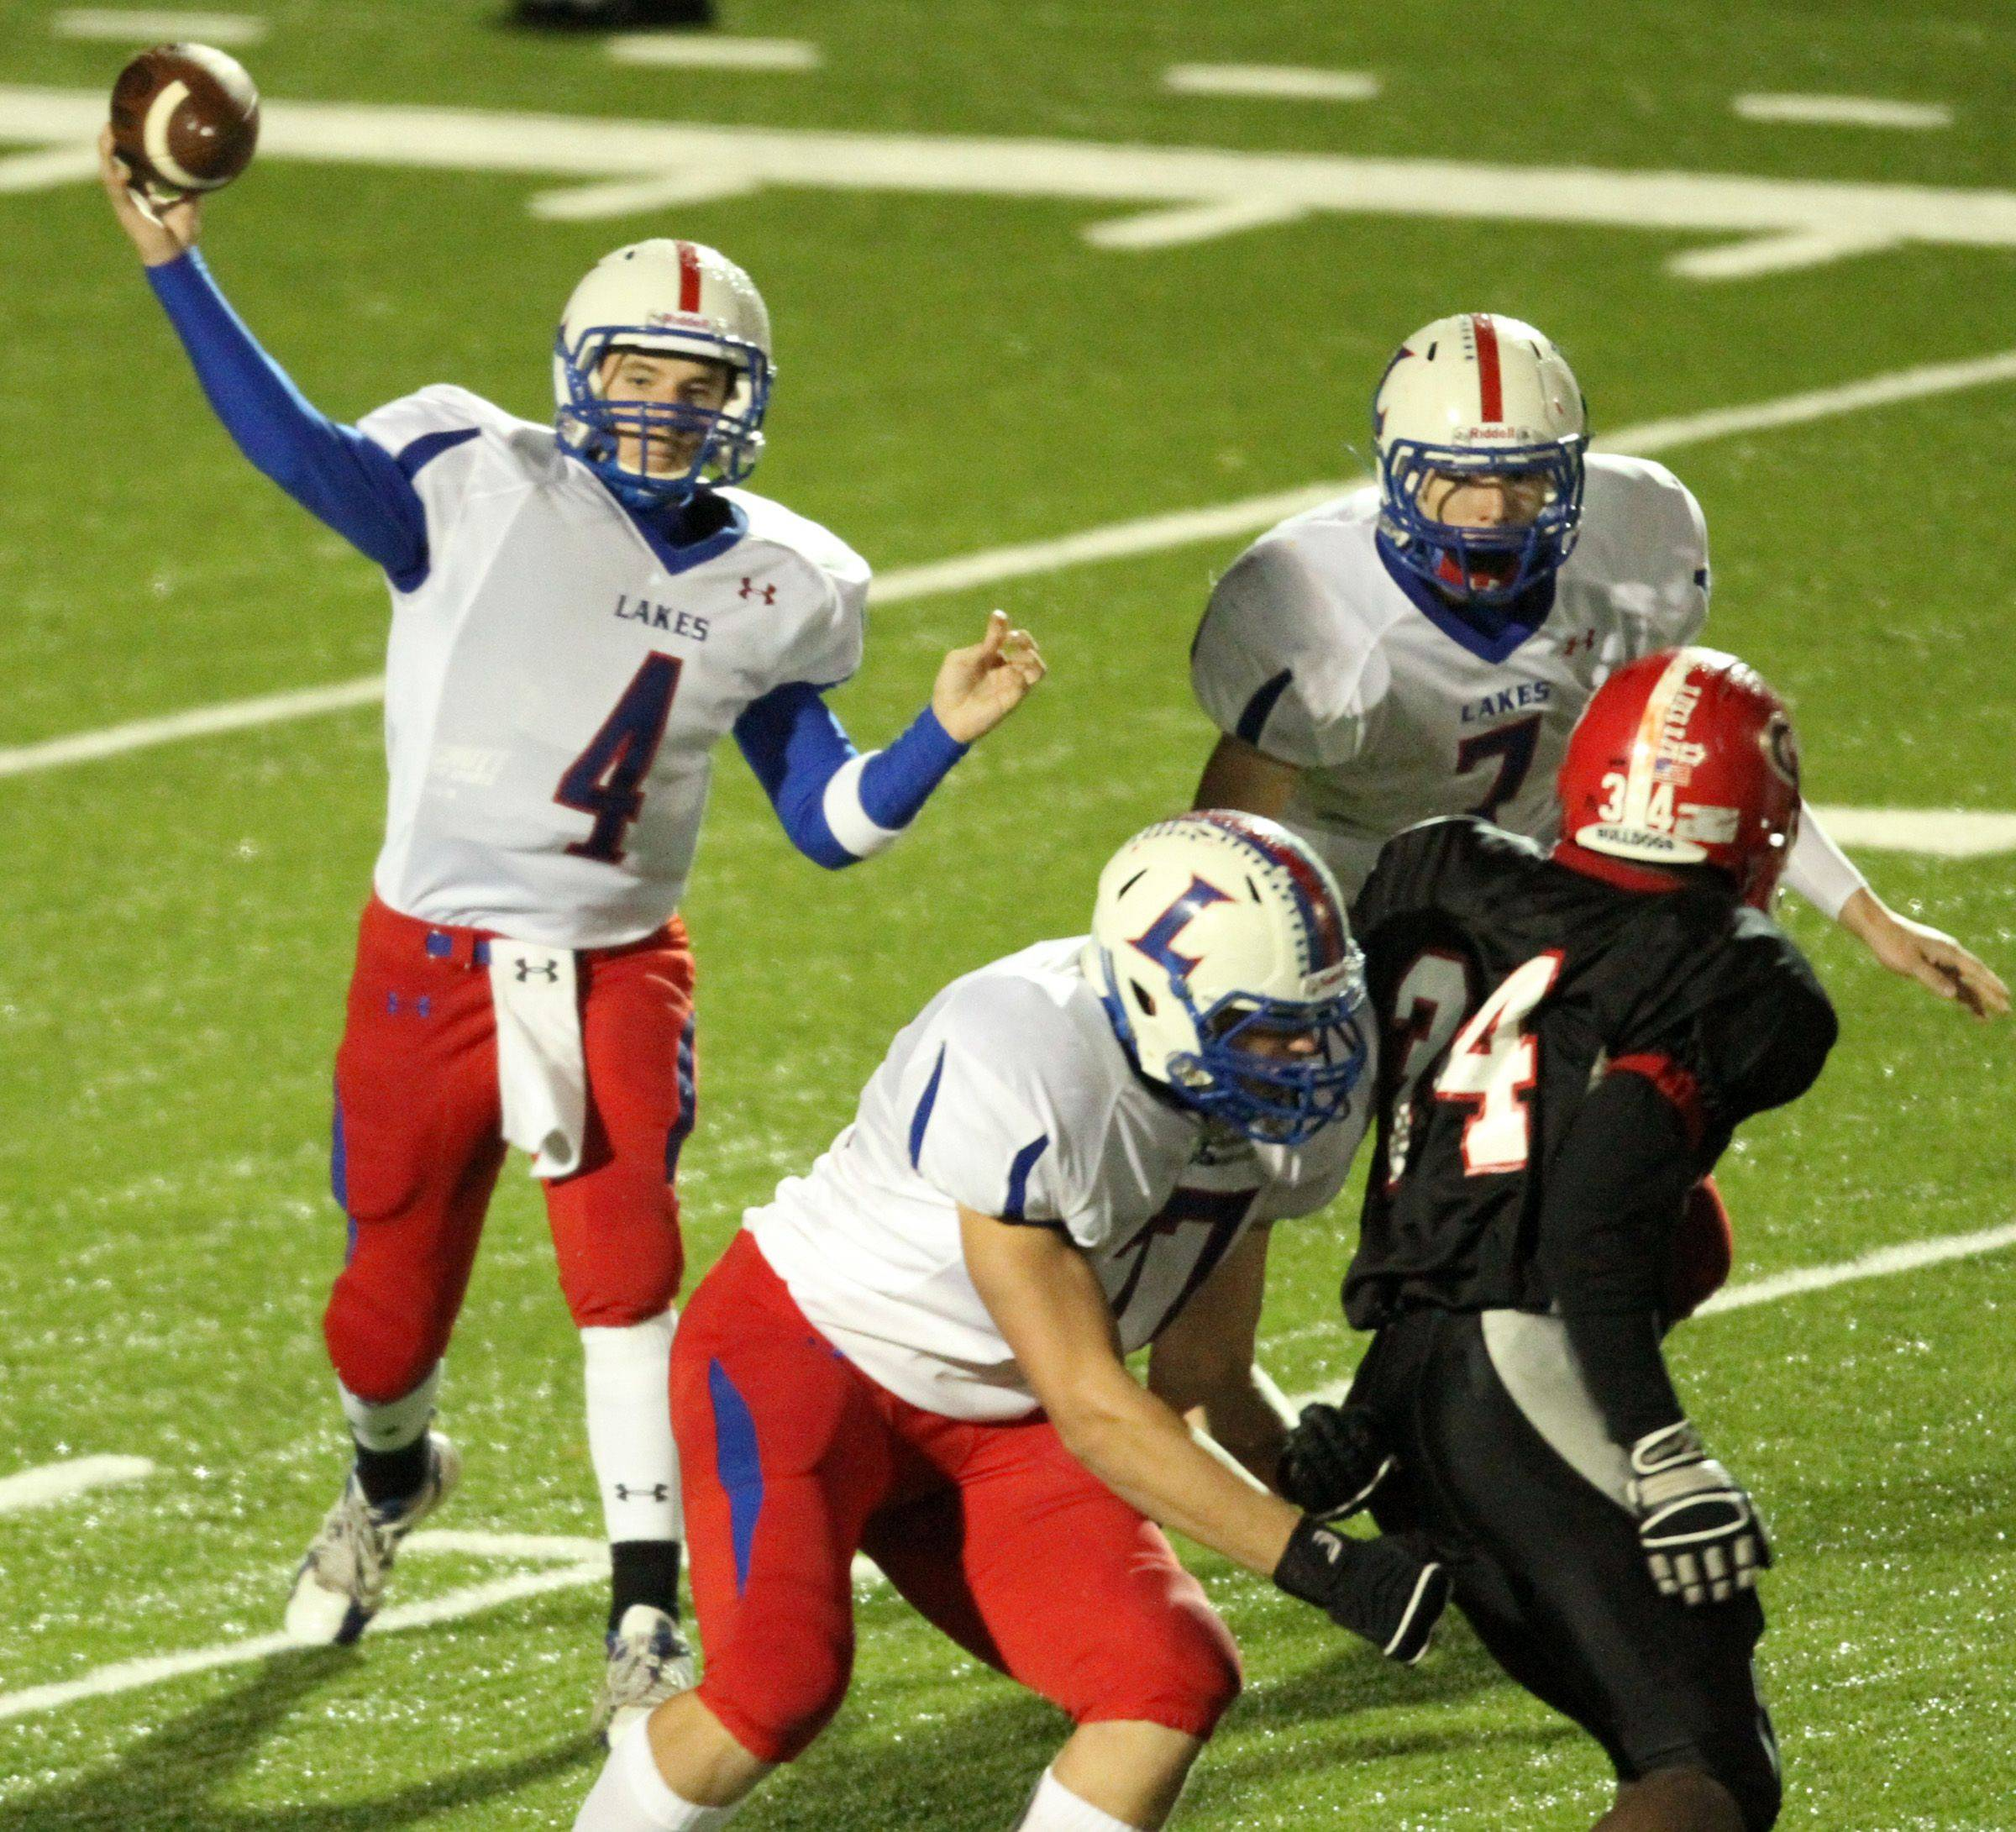 WEEK 9- Lakes quarterback Jeff Eder passes the ball against Grant.